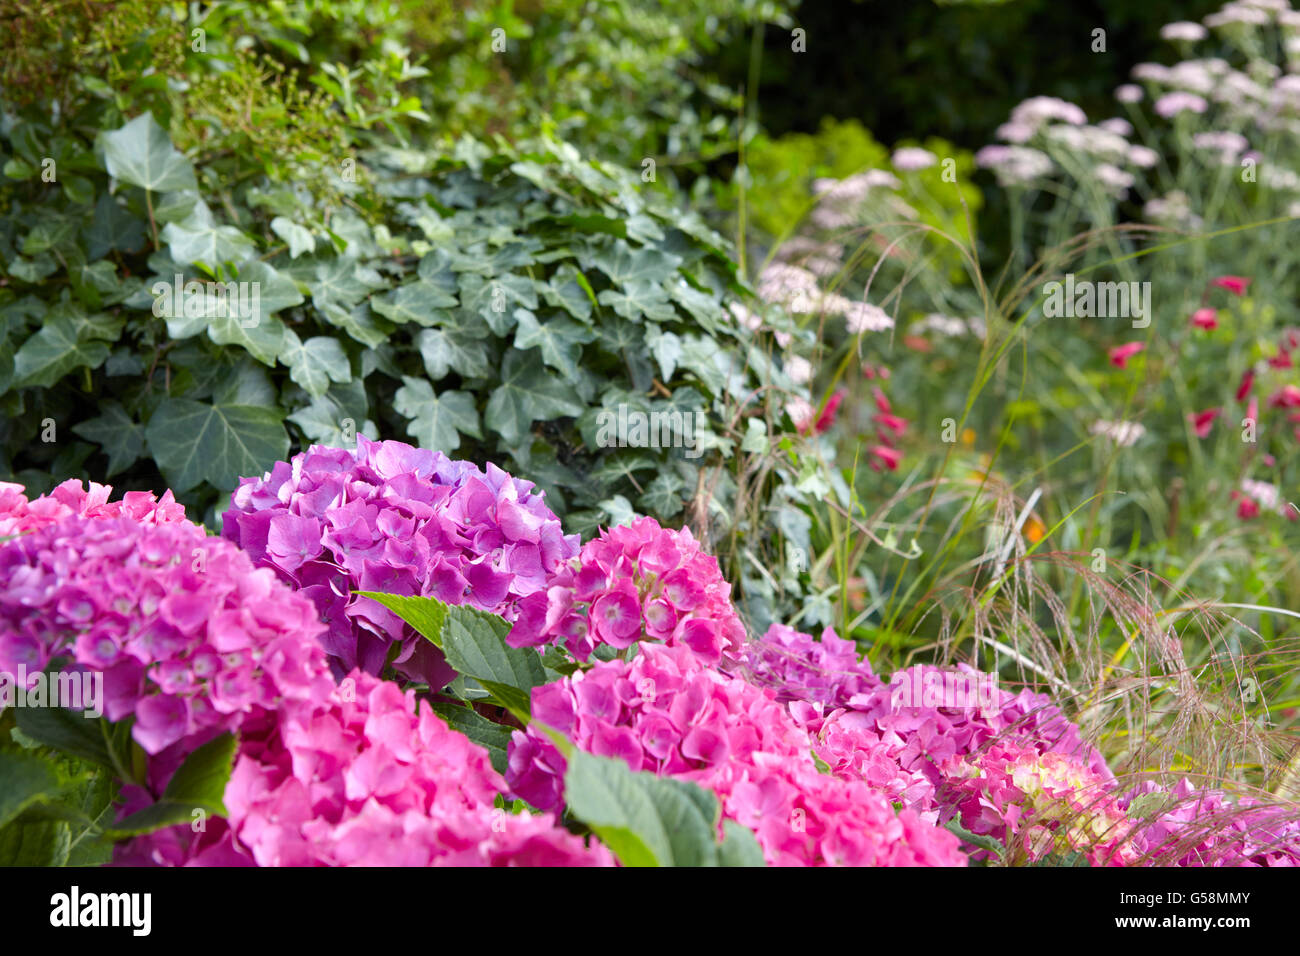 Hydrangeas in an English country garden - Stock Image